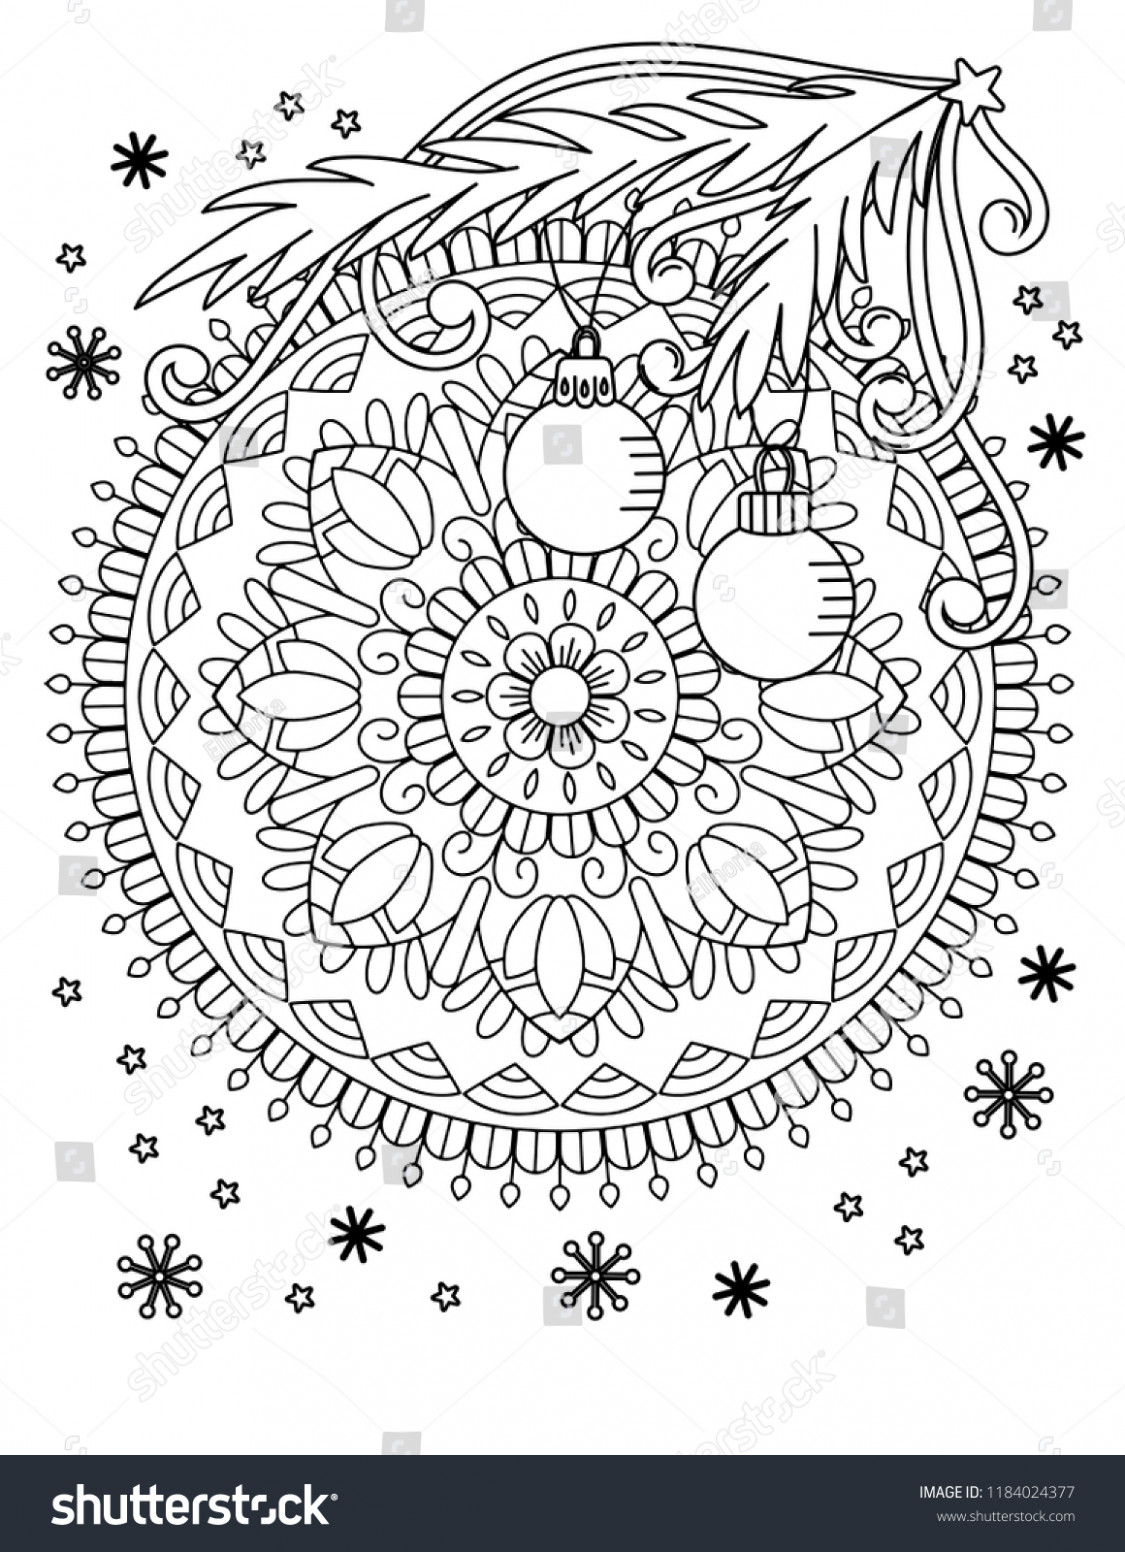 Christmas Mandala Coloring Page Adult Coloring Stock Vector (Royalty ...